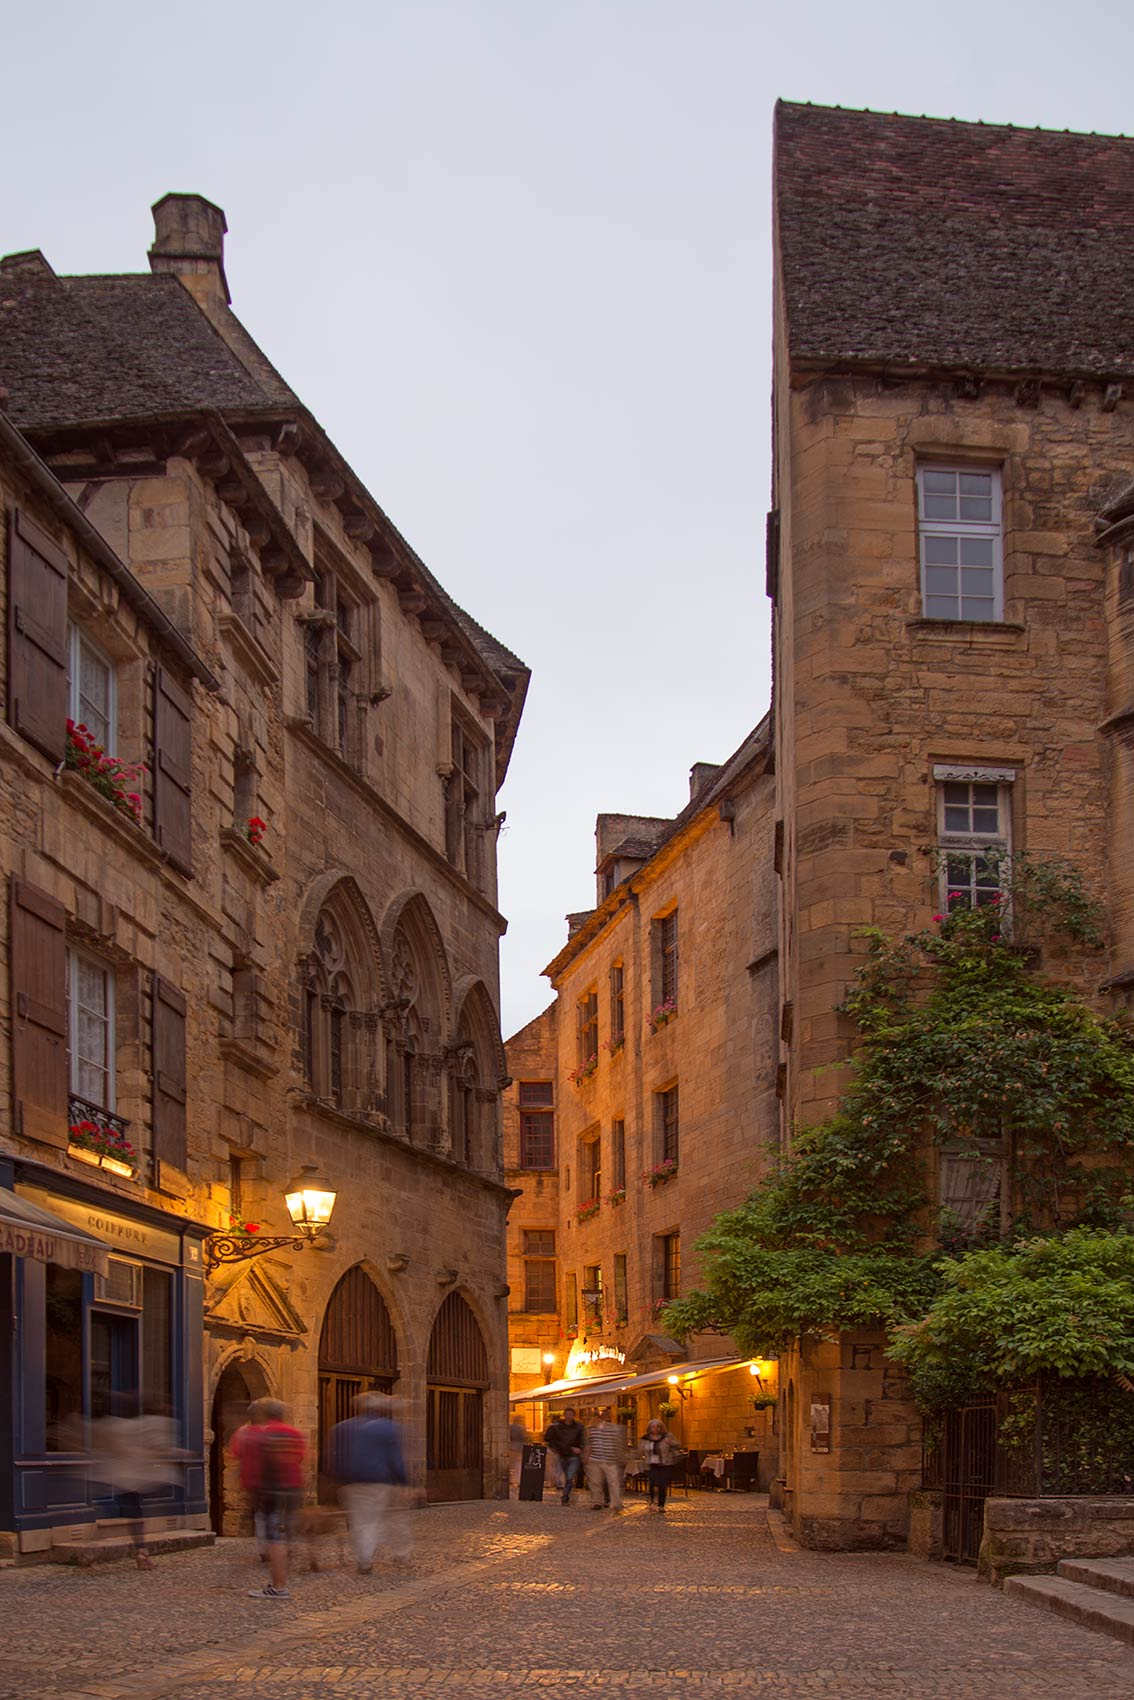 Sarlat, France Travel Photographer from Boise Idaho